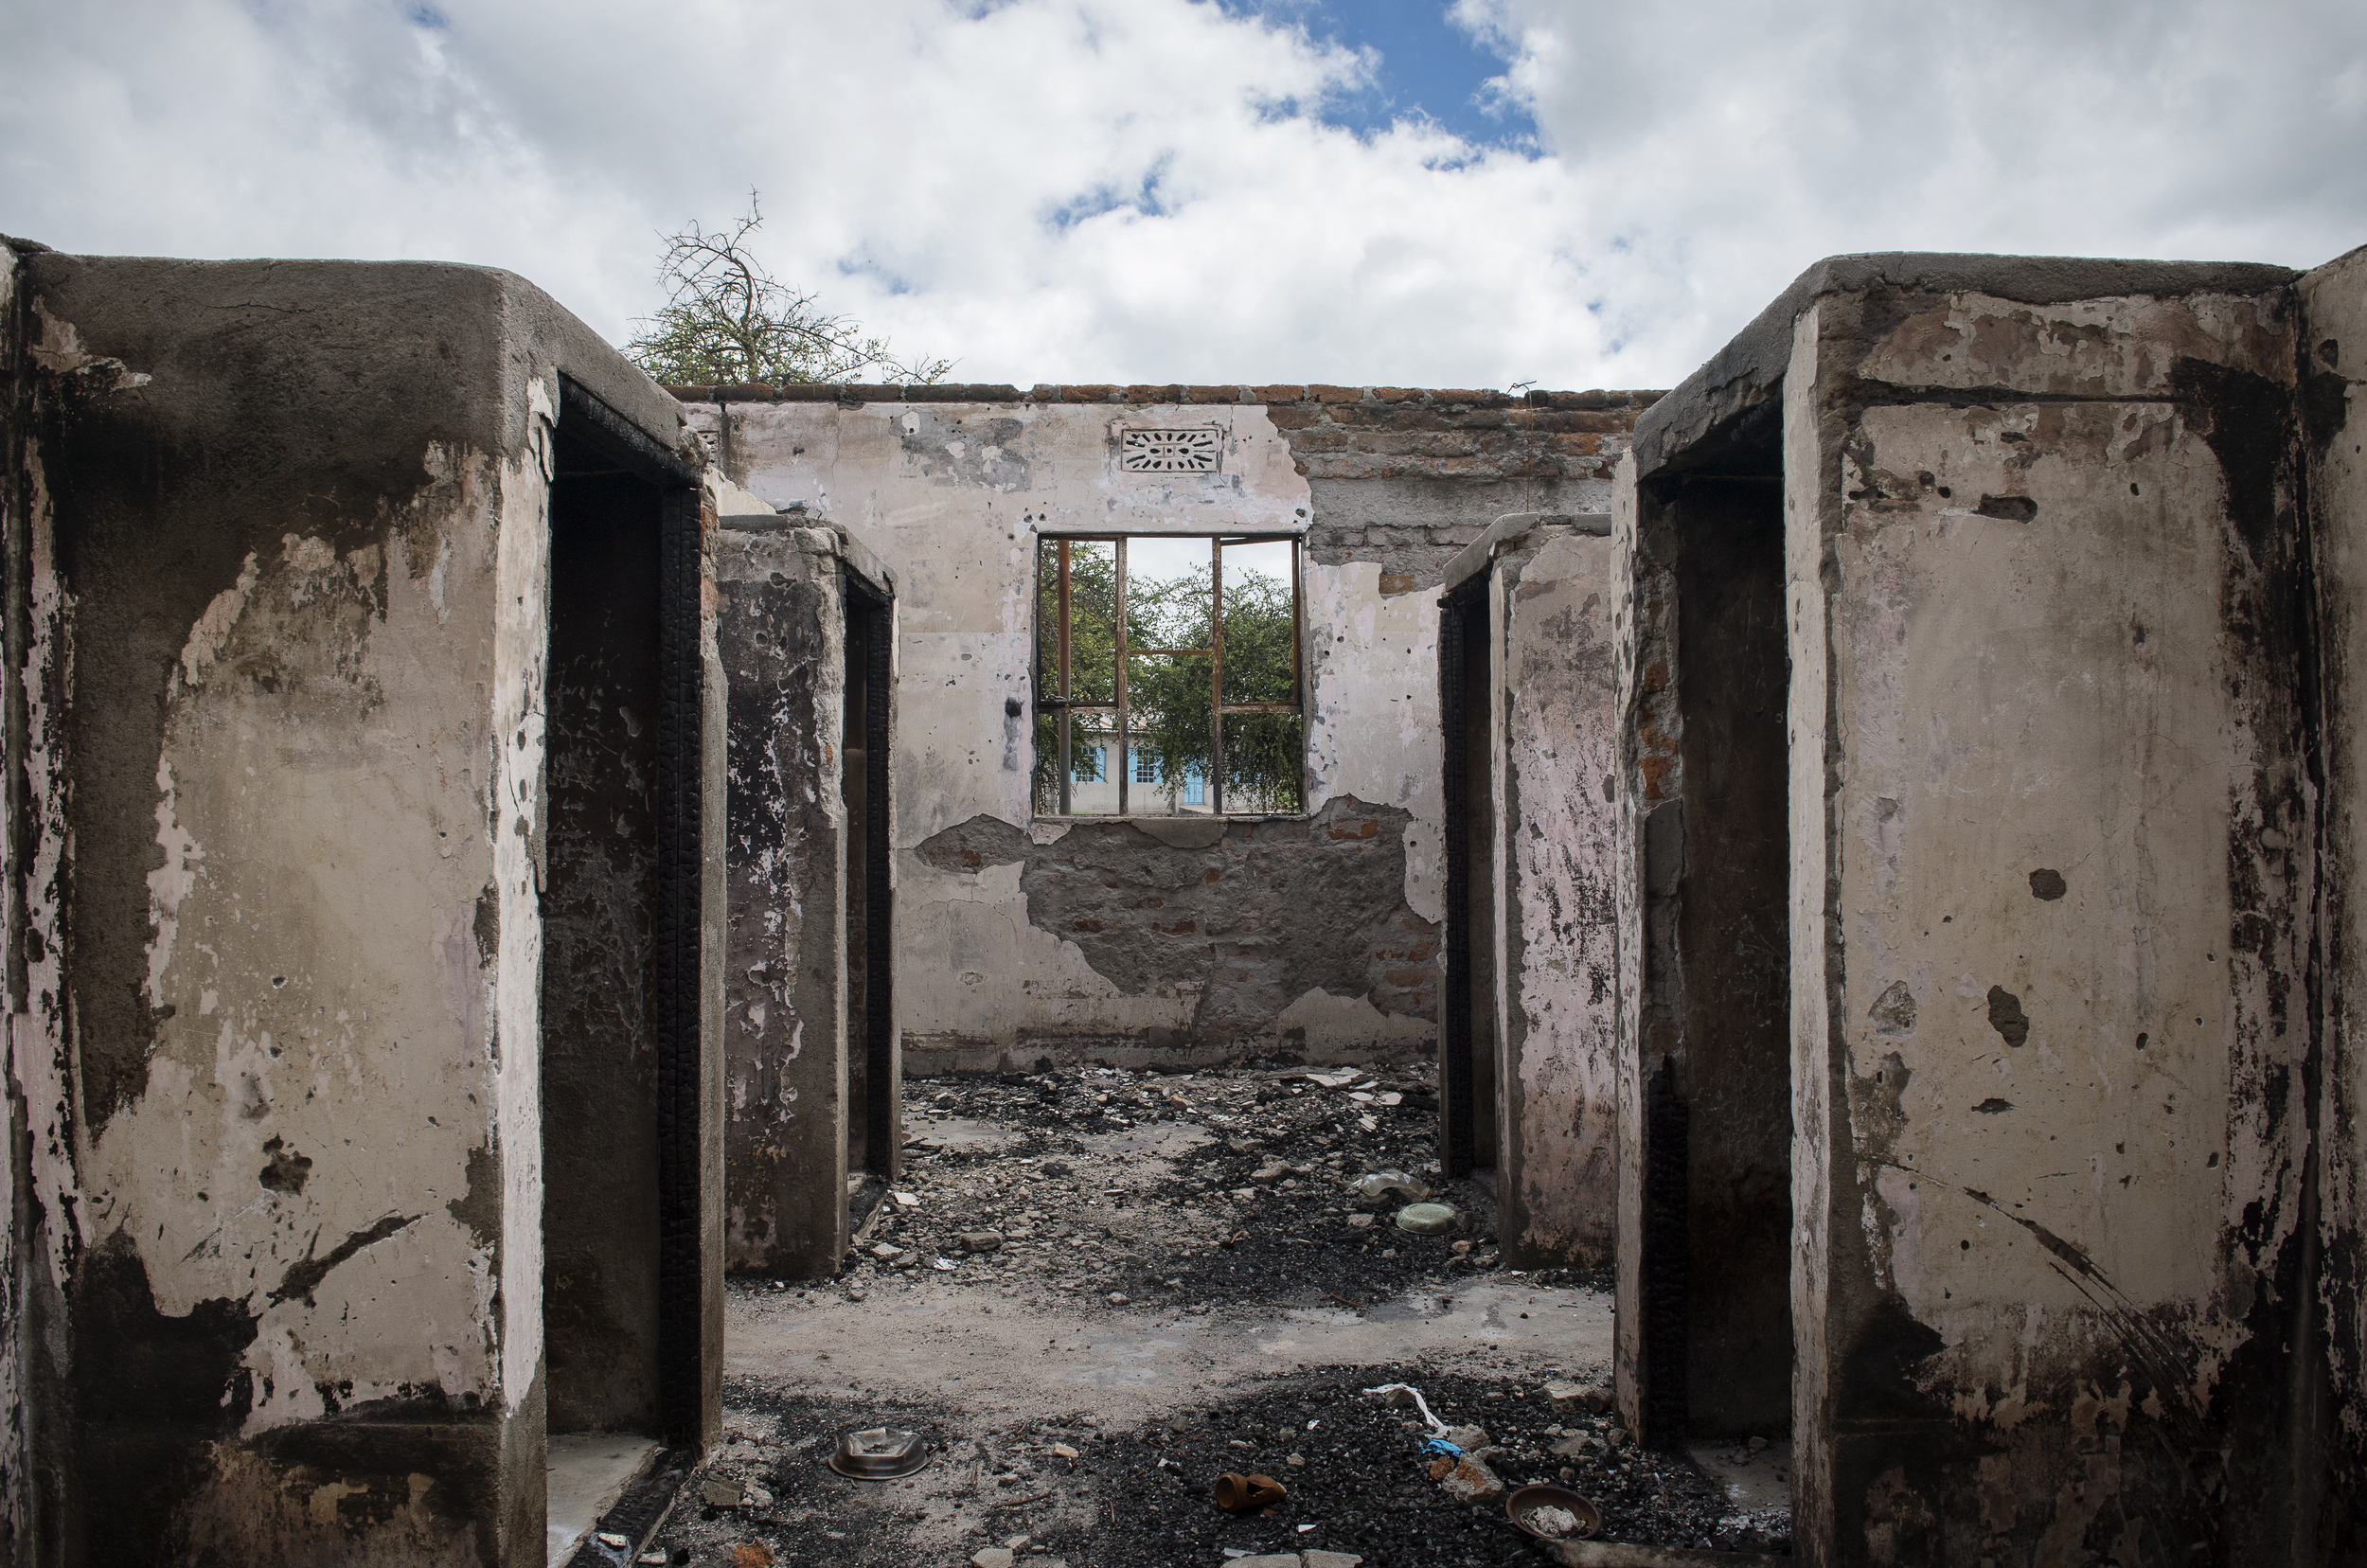 Boys' dormitory after the fire